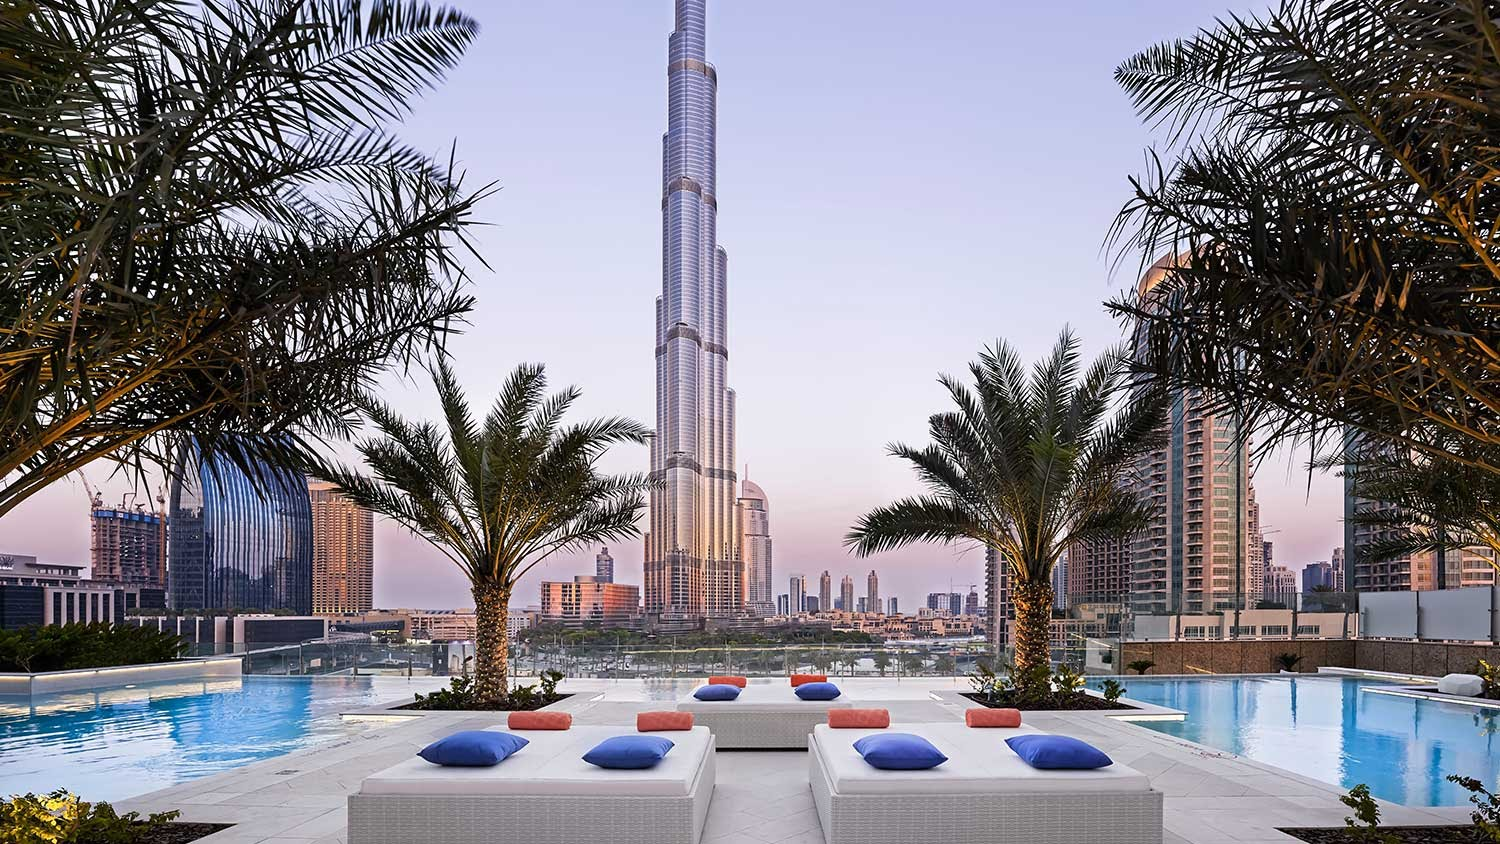 Looking For A Swimming Pool In Dubai With Burj Khalifa